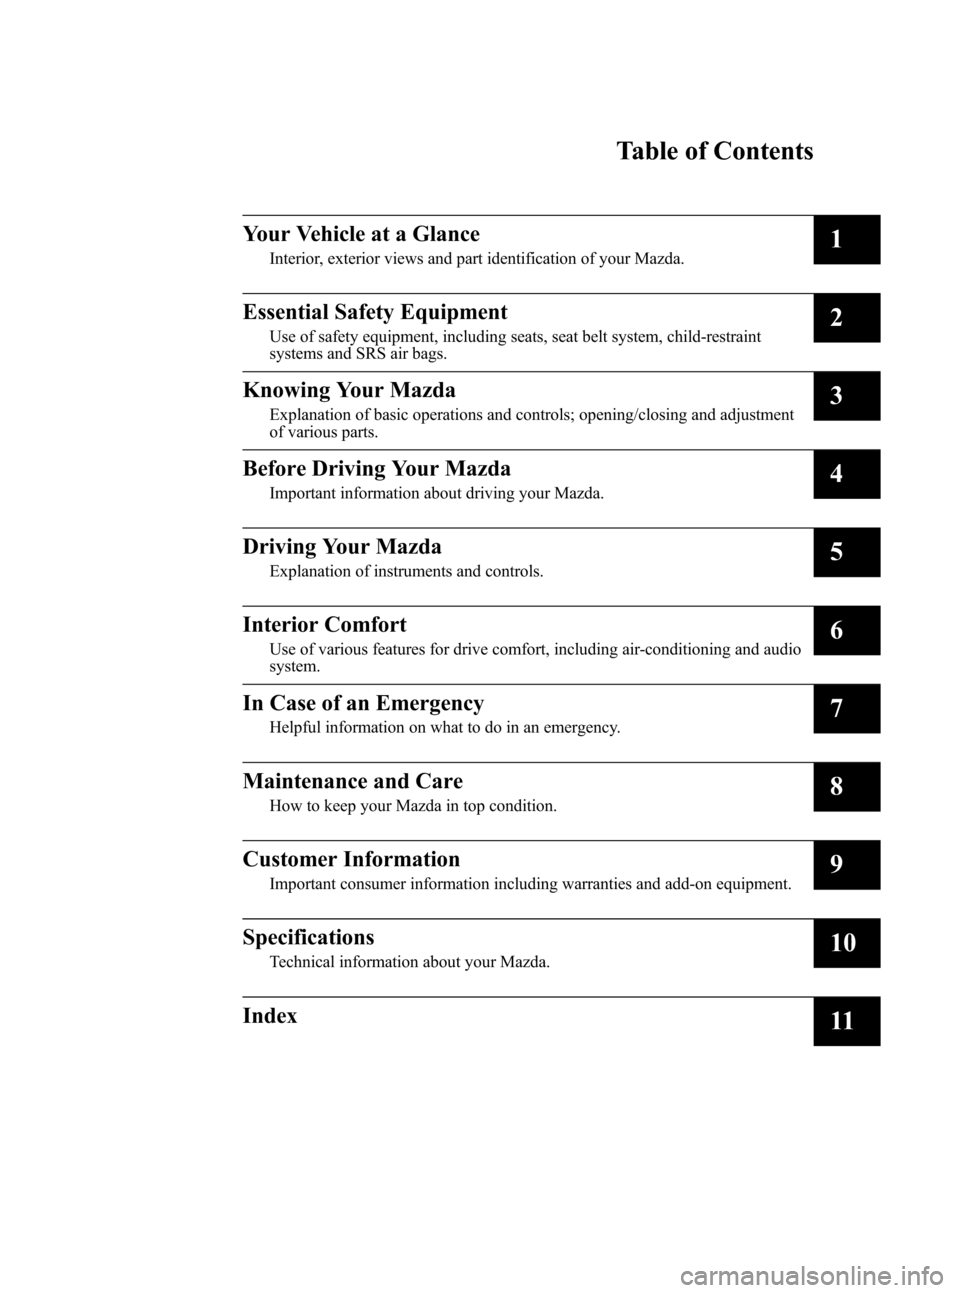 MAZDA MODEL 3 HATCHBACK 2012  Owners Manual (in English) Black plate (5,1) Mazda3_8BY7-EC-11F_Edition1 Page5 Friday, June 17 2011 2:54 PM Form No.8BY7-EC-11F Table of Contents Your Vehicle at a Glance Interior, exterior views and part identification of your